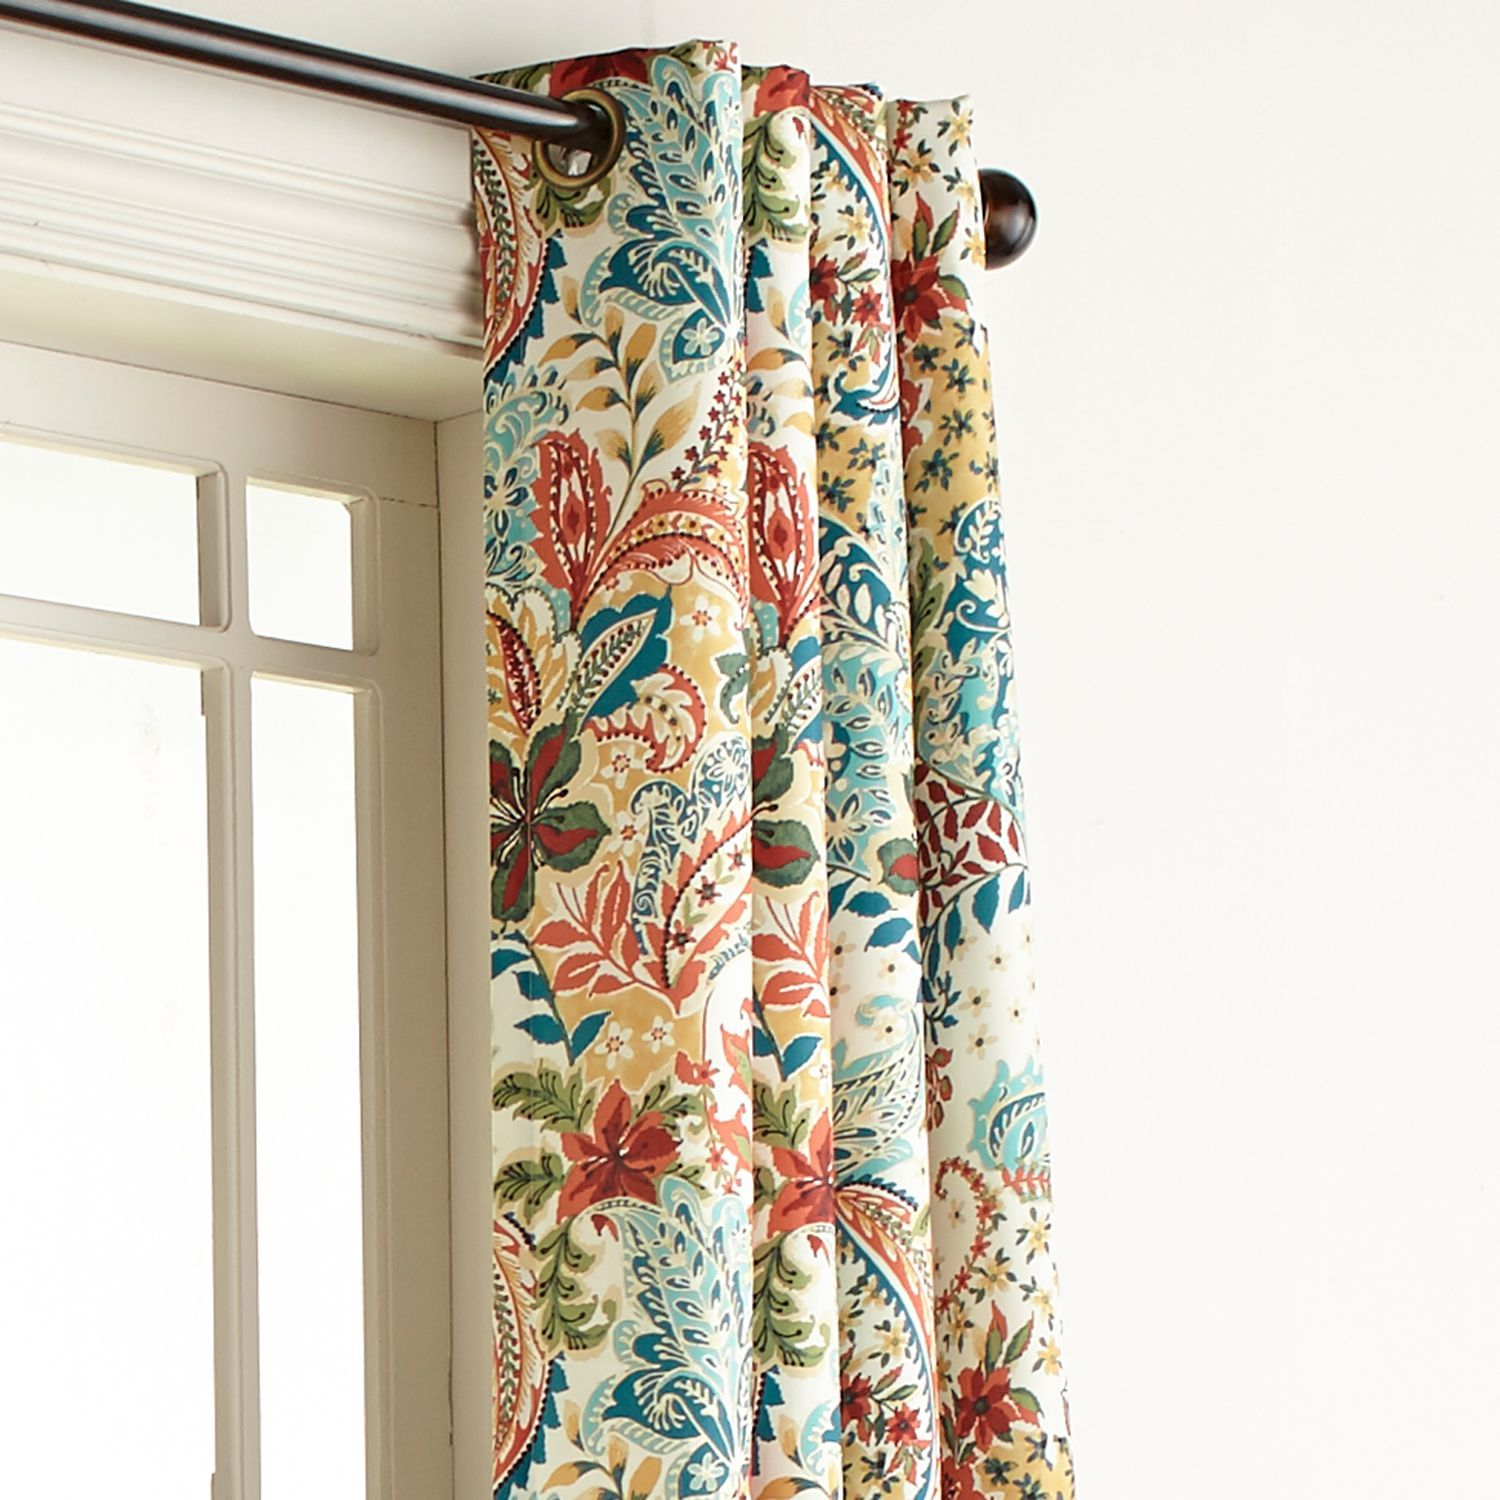 Clara Floral 96 Grommet Curtain Pier 1 Imports Curtains Living Room Living Room Decor Curtains Curtain Designs #patterned #curtains #for #living #room